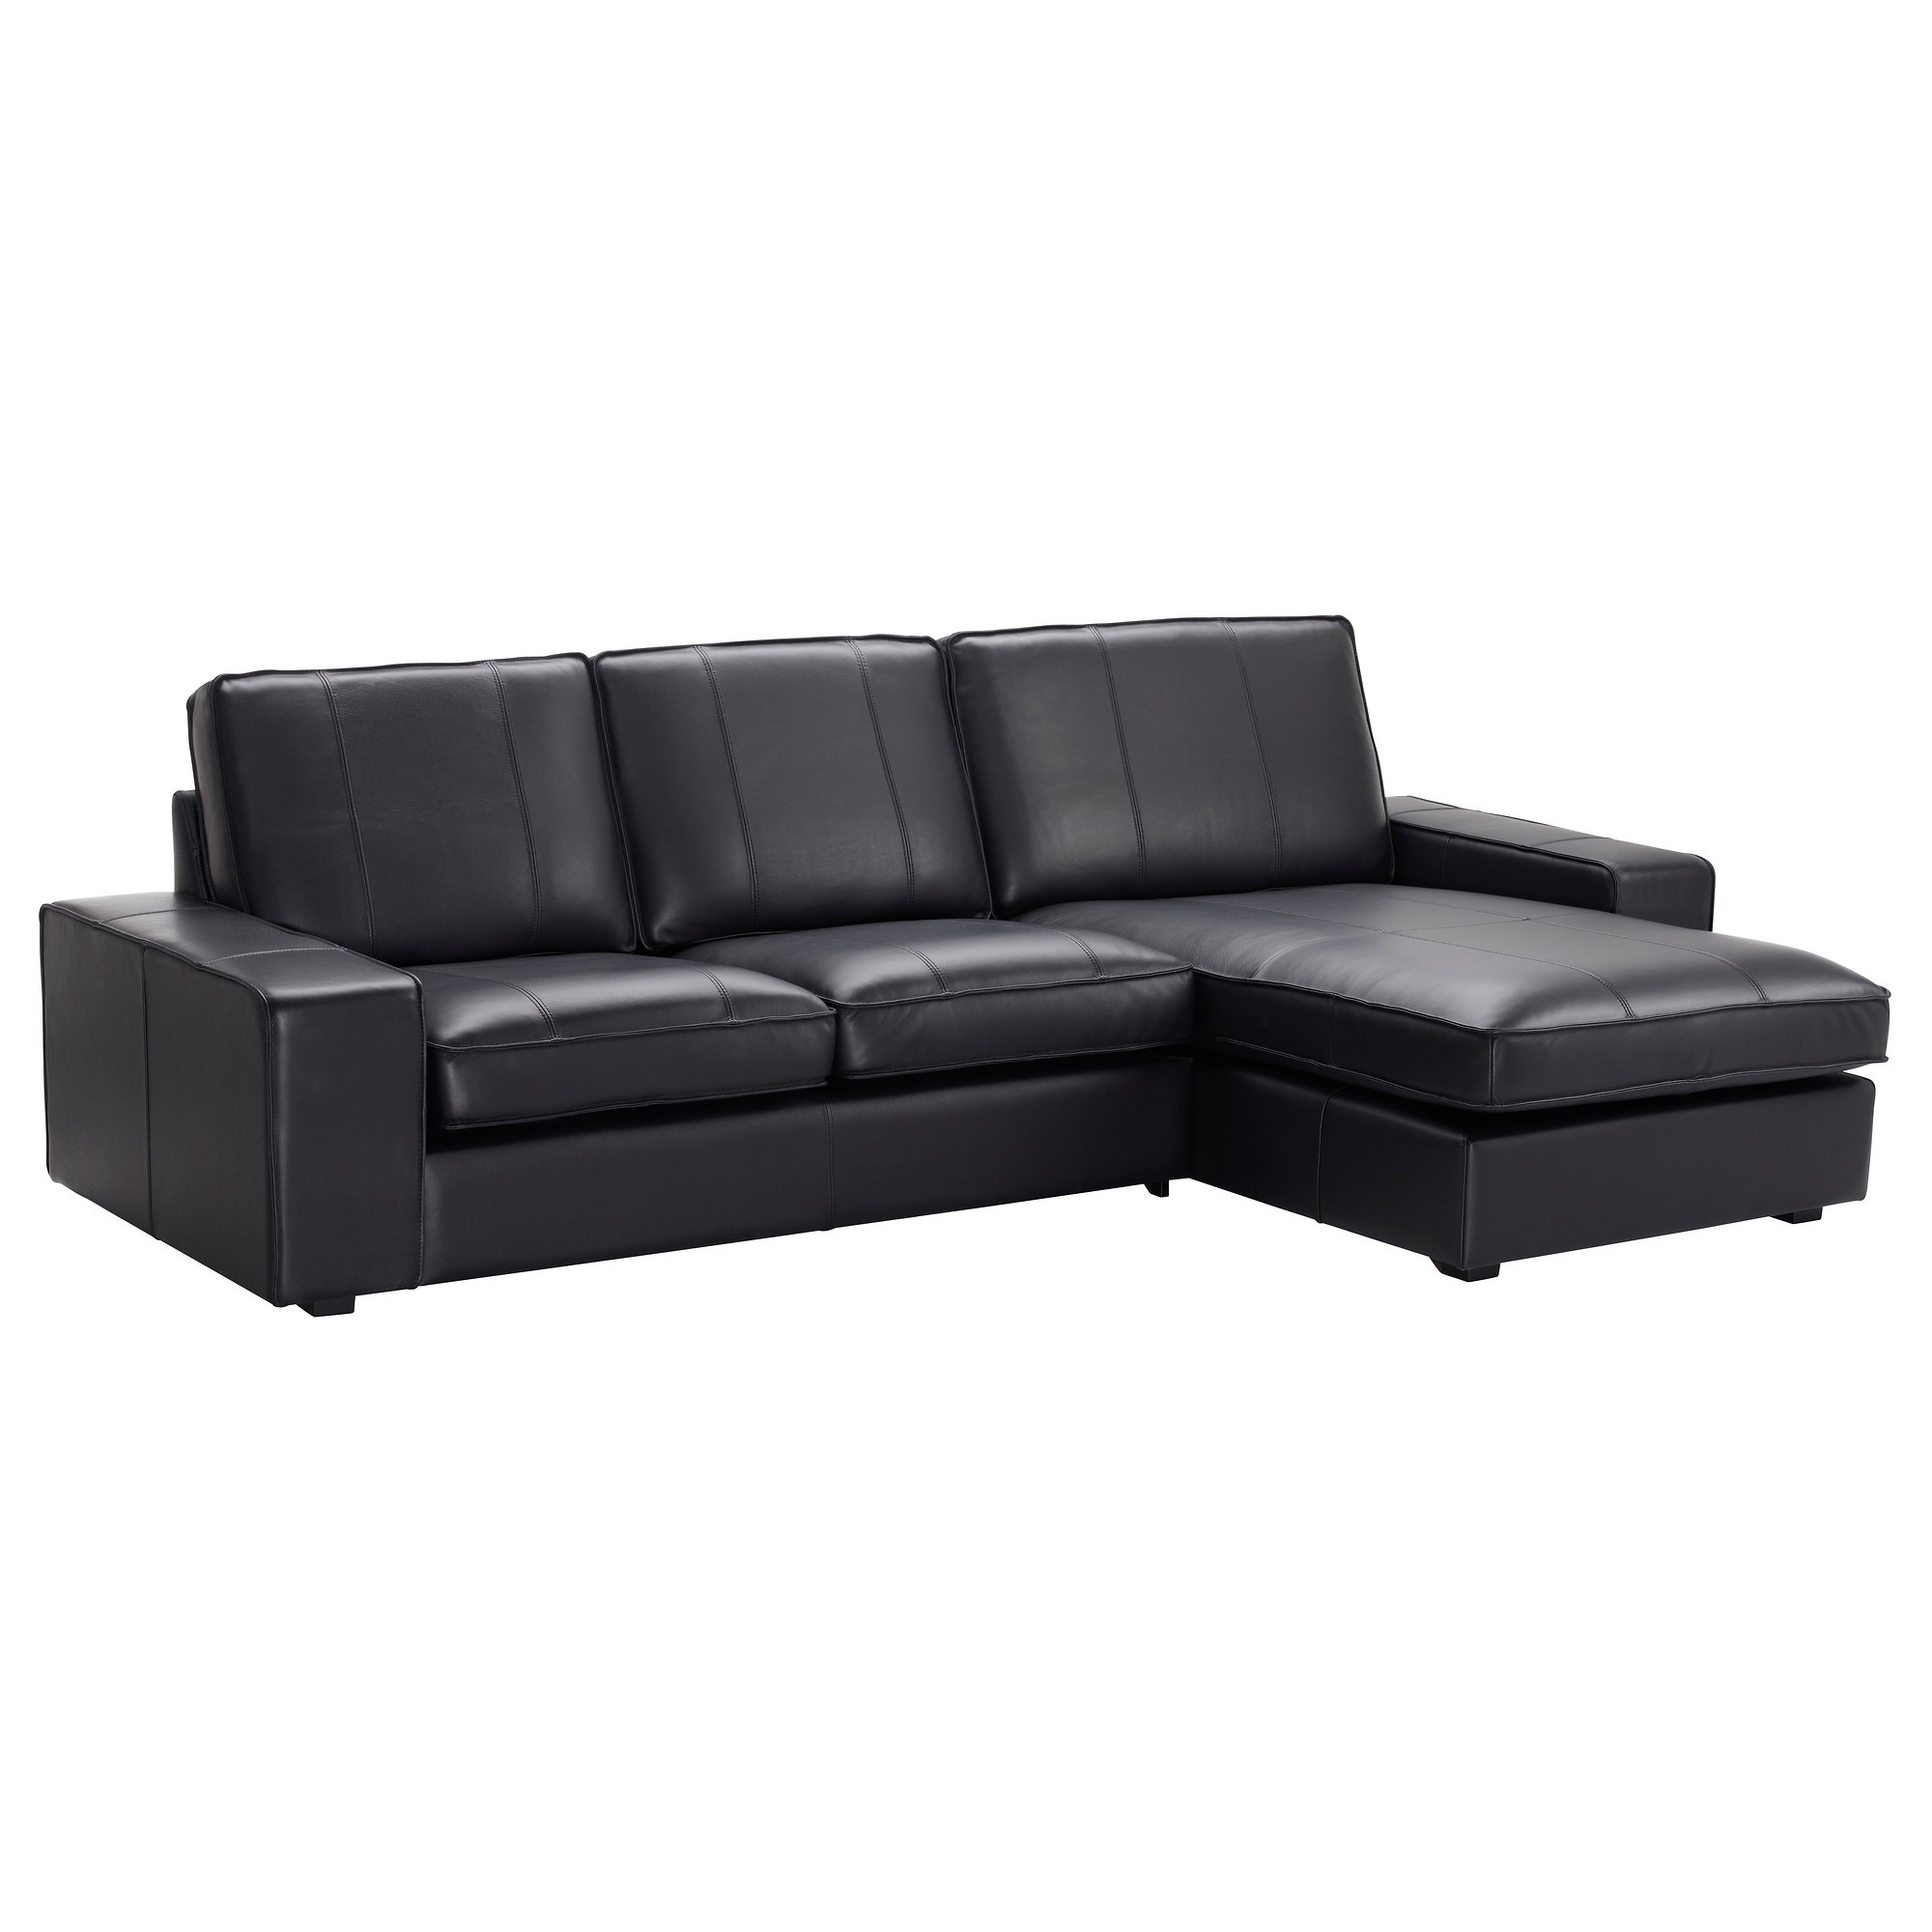 canap cuir ikea relaxima ottawa pouf bois taupenoir x x cm with canap cuir ikea canap cuir. Black Bedroom Furniture Sets. Home Design Ideas